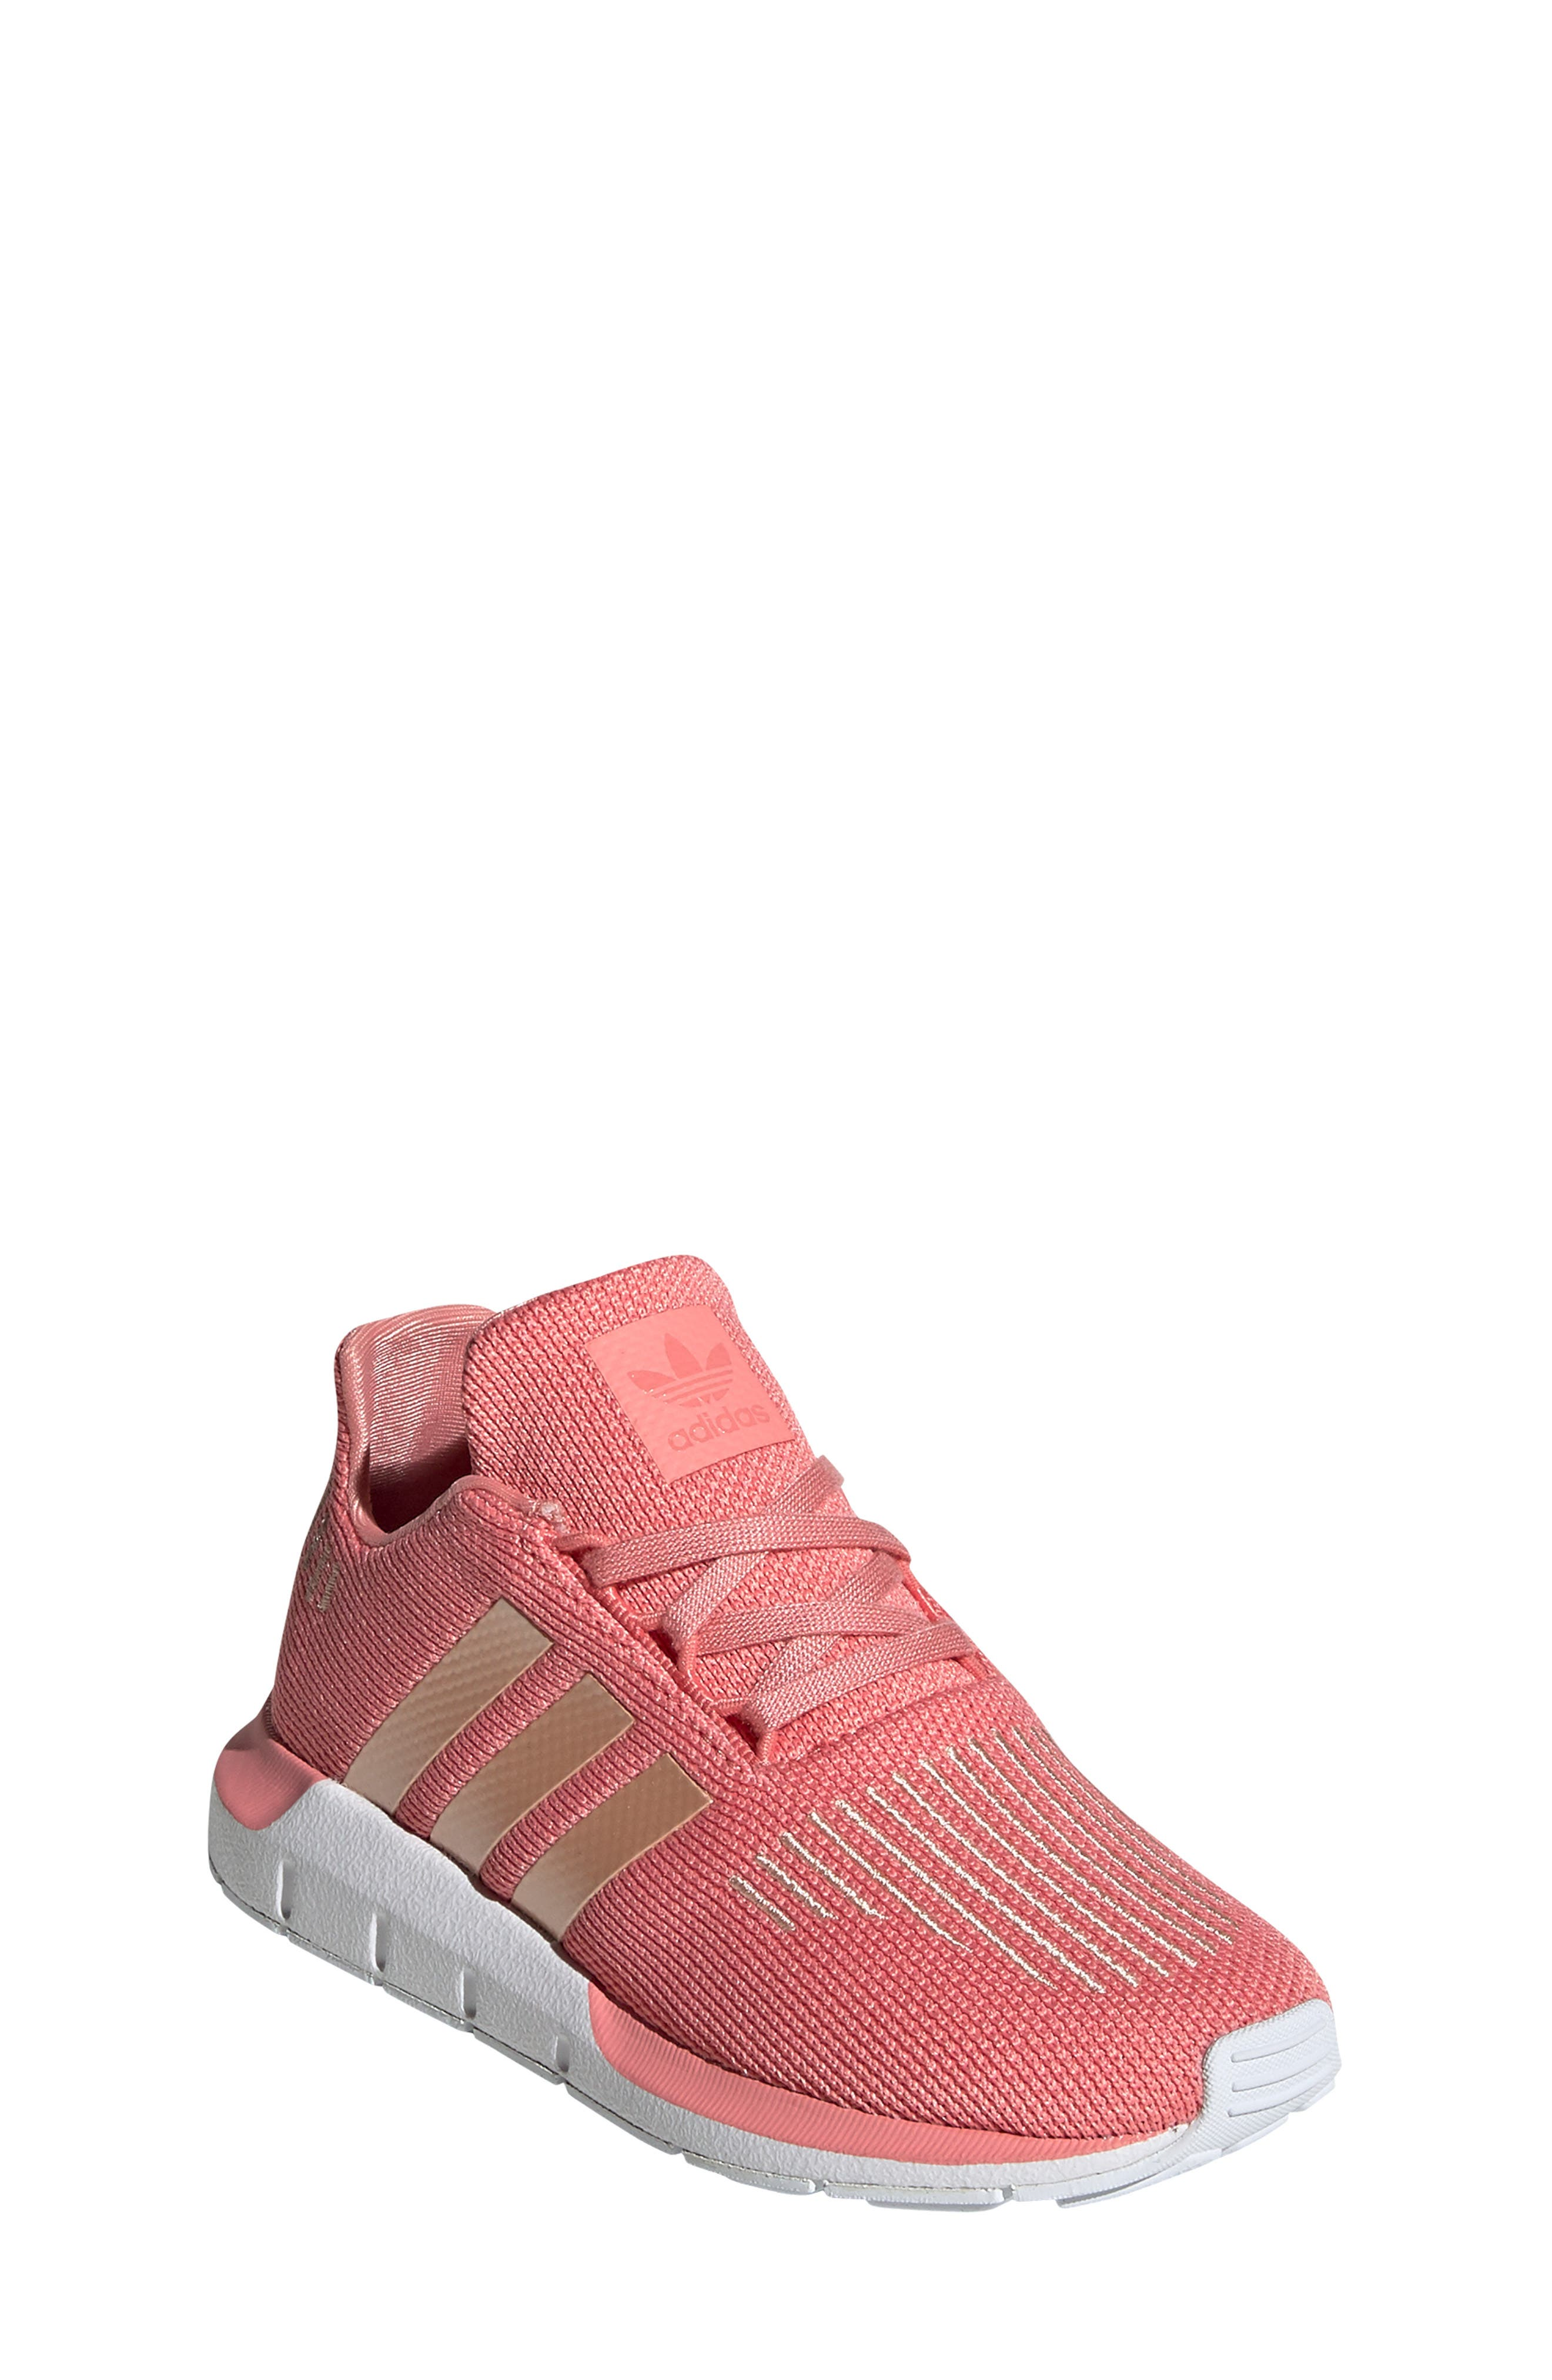 Girls\u0027 Adidas Shoes